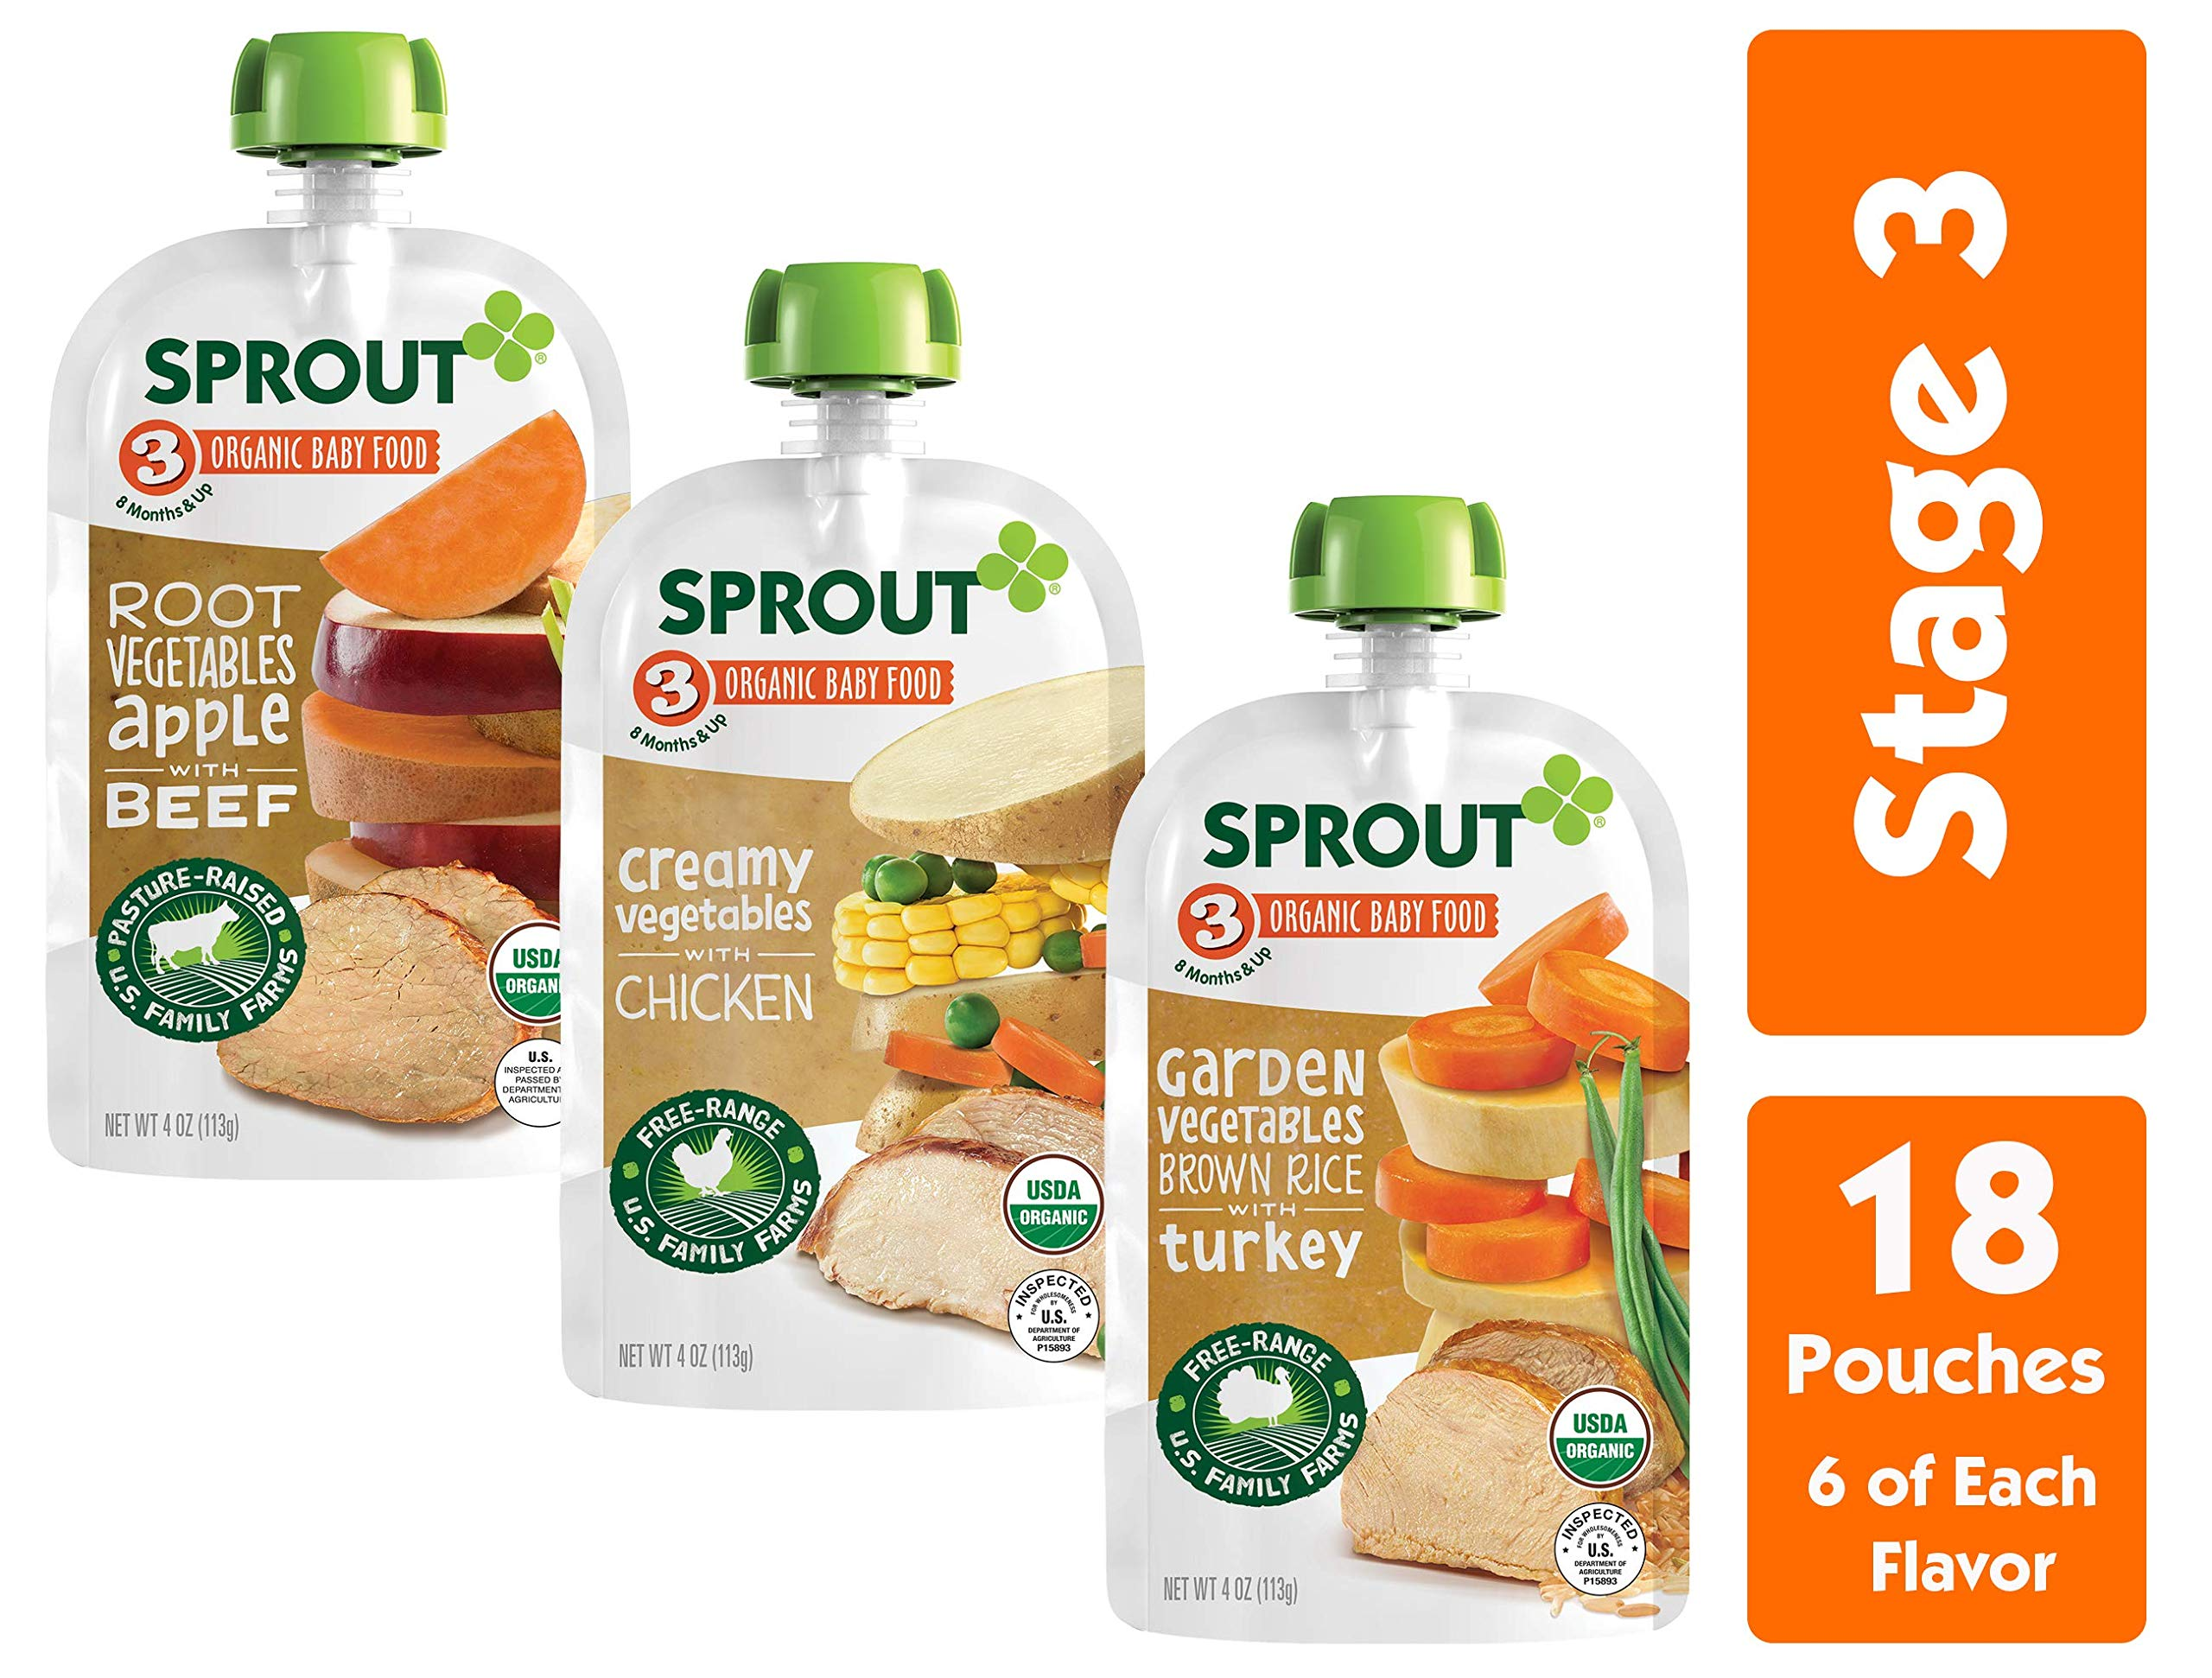 Sprout Organic Stage 3 Baby Food Pouches, Meat Variety, 4 Ounce (Pack of 18) 6 of Each: Root Veg Apple w/ Beef, Creamy Veg w/ Chicken & Garden Veg Brown Rice w/ Turkey by Sprout